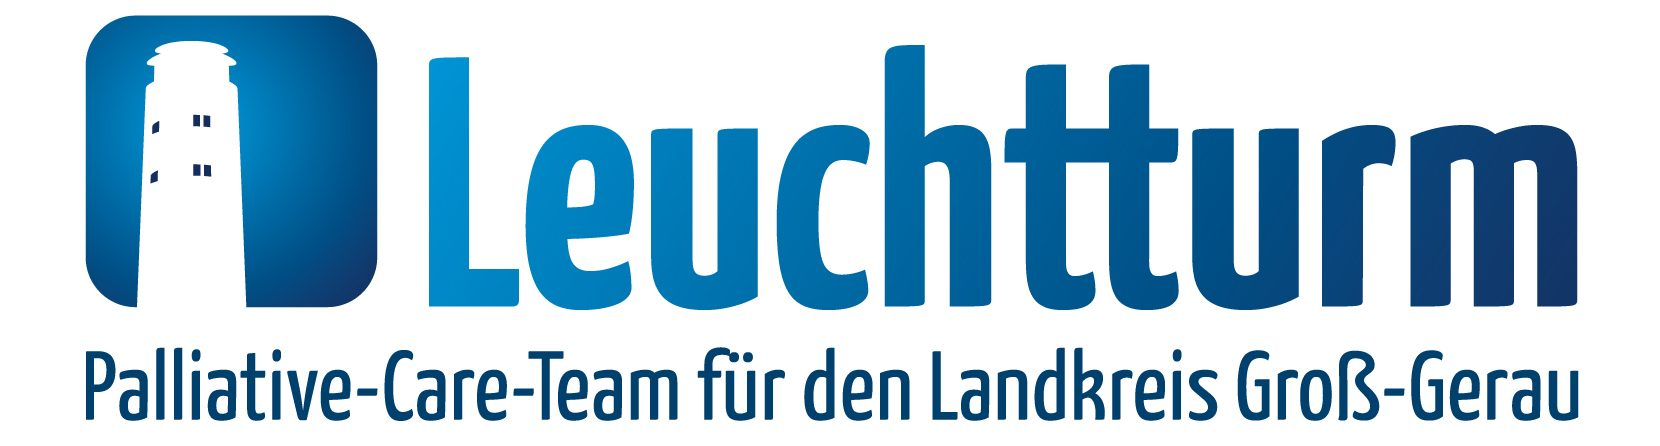 Palliative-Care-Team Leuchtturm